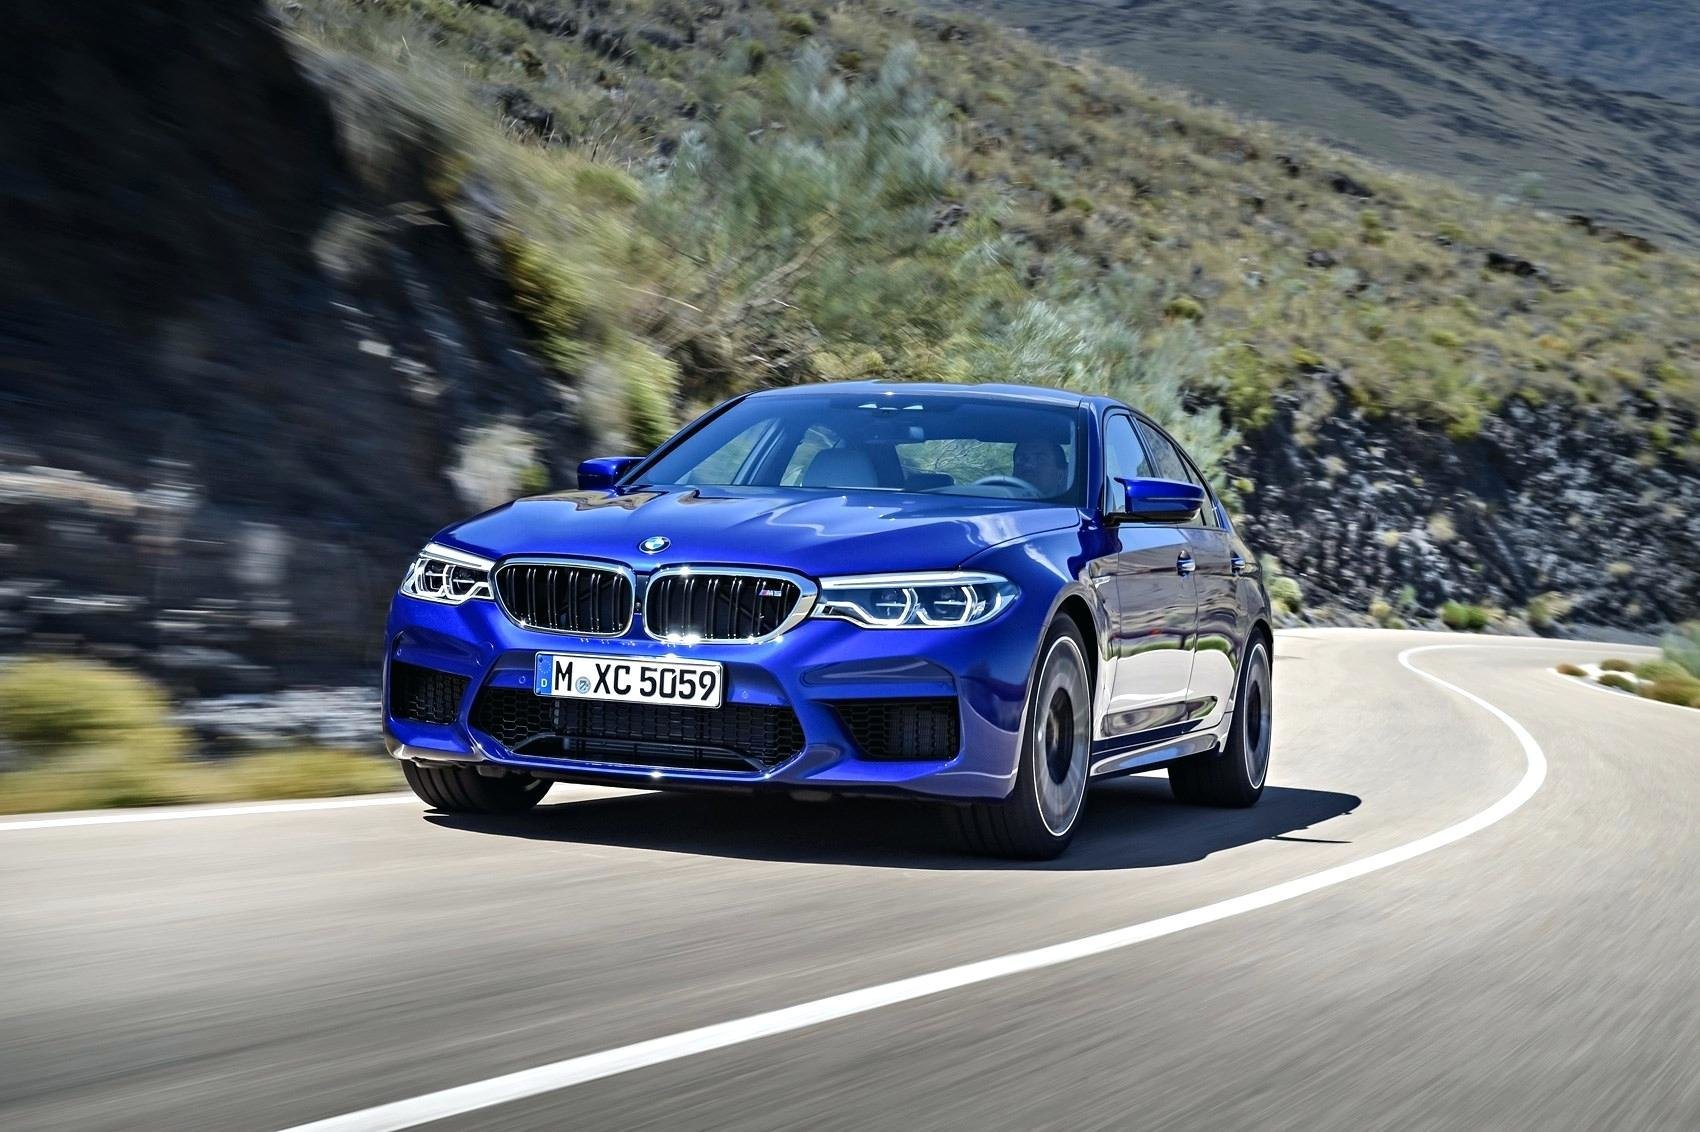 Latest Bmw Car Ka Photo Luxury Car And Motorcycle Brands Free Download